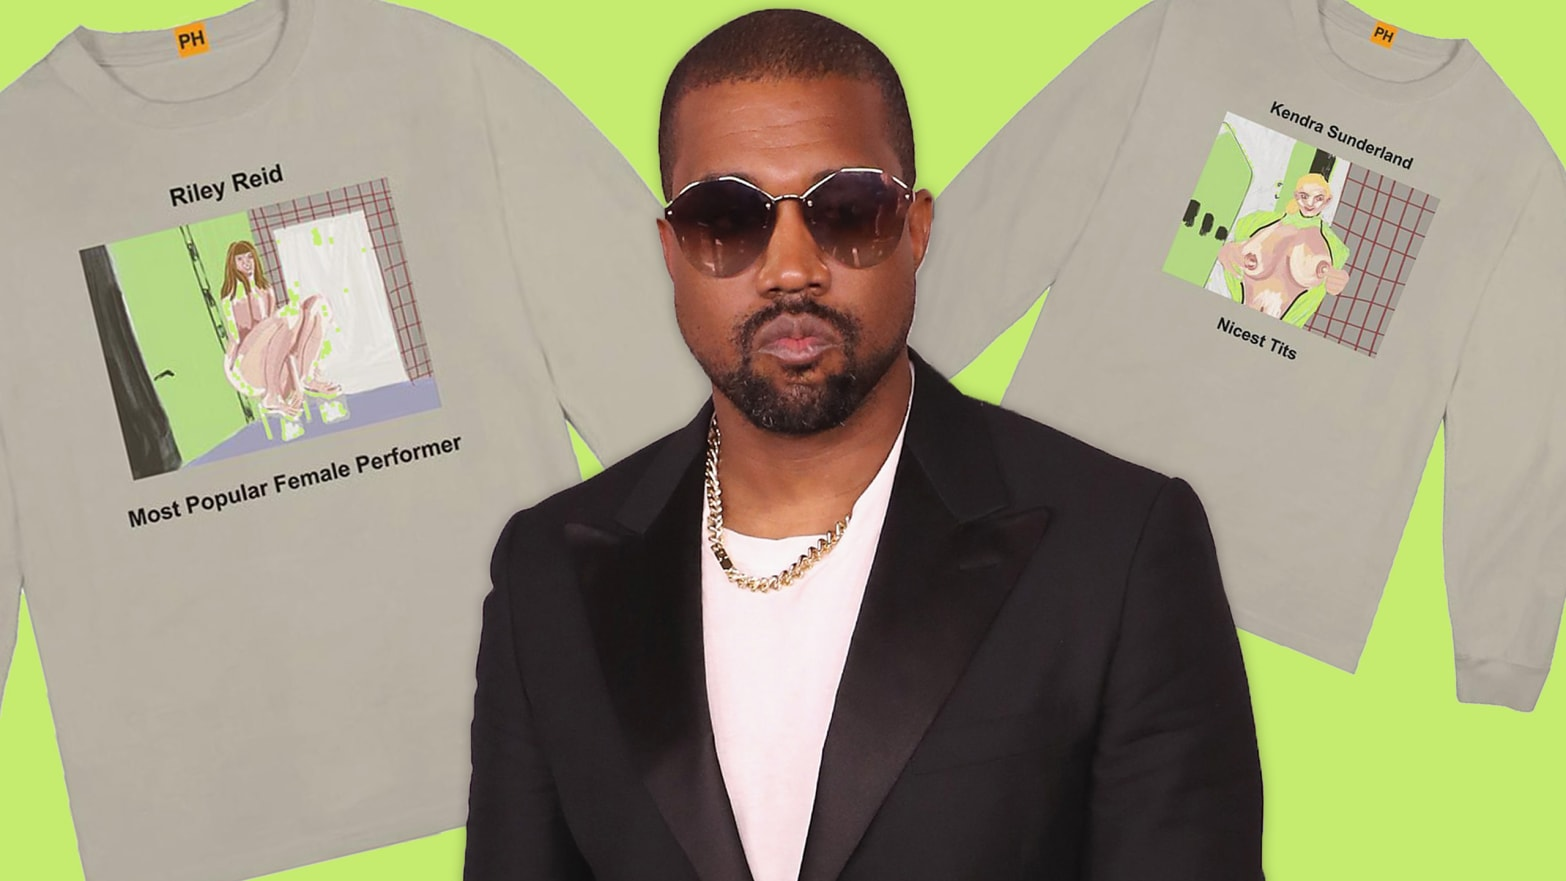 Kanye Wests Porn Moment What The Rap Icons Xxx Co Sign Means For The Adult Industry